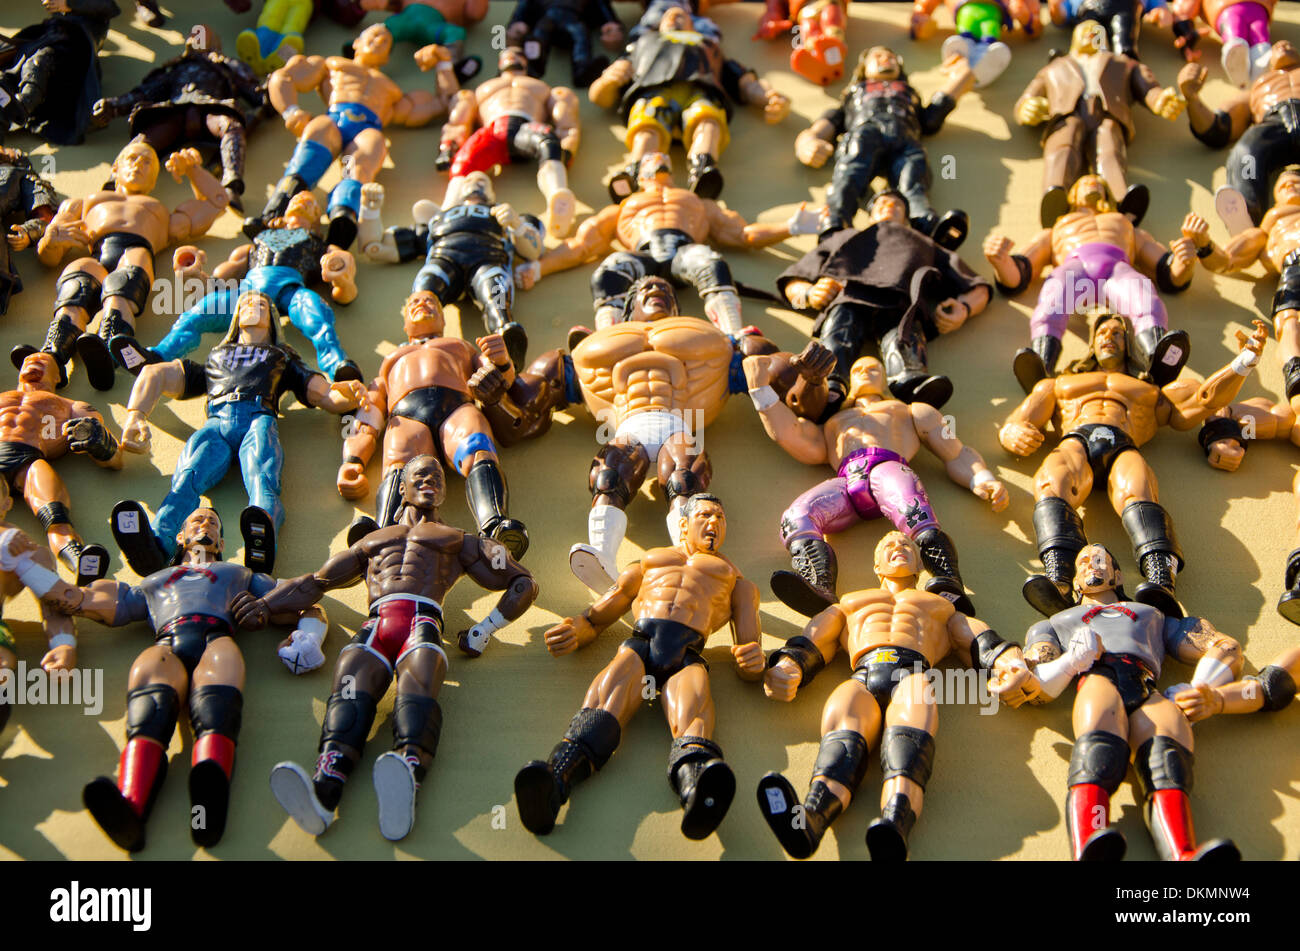 Collection of wrestling figures for sale on a second hand market in Fuengirola, Spain. - Stock Image